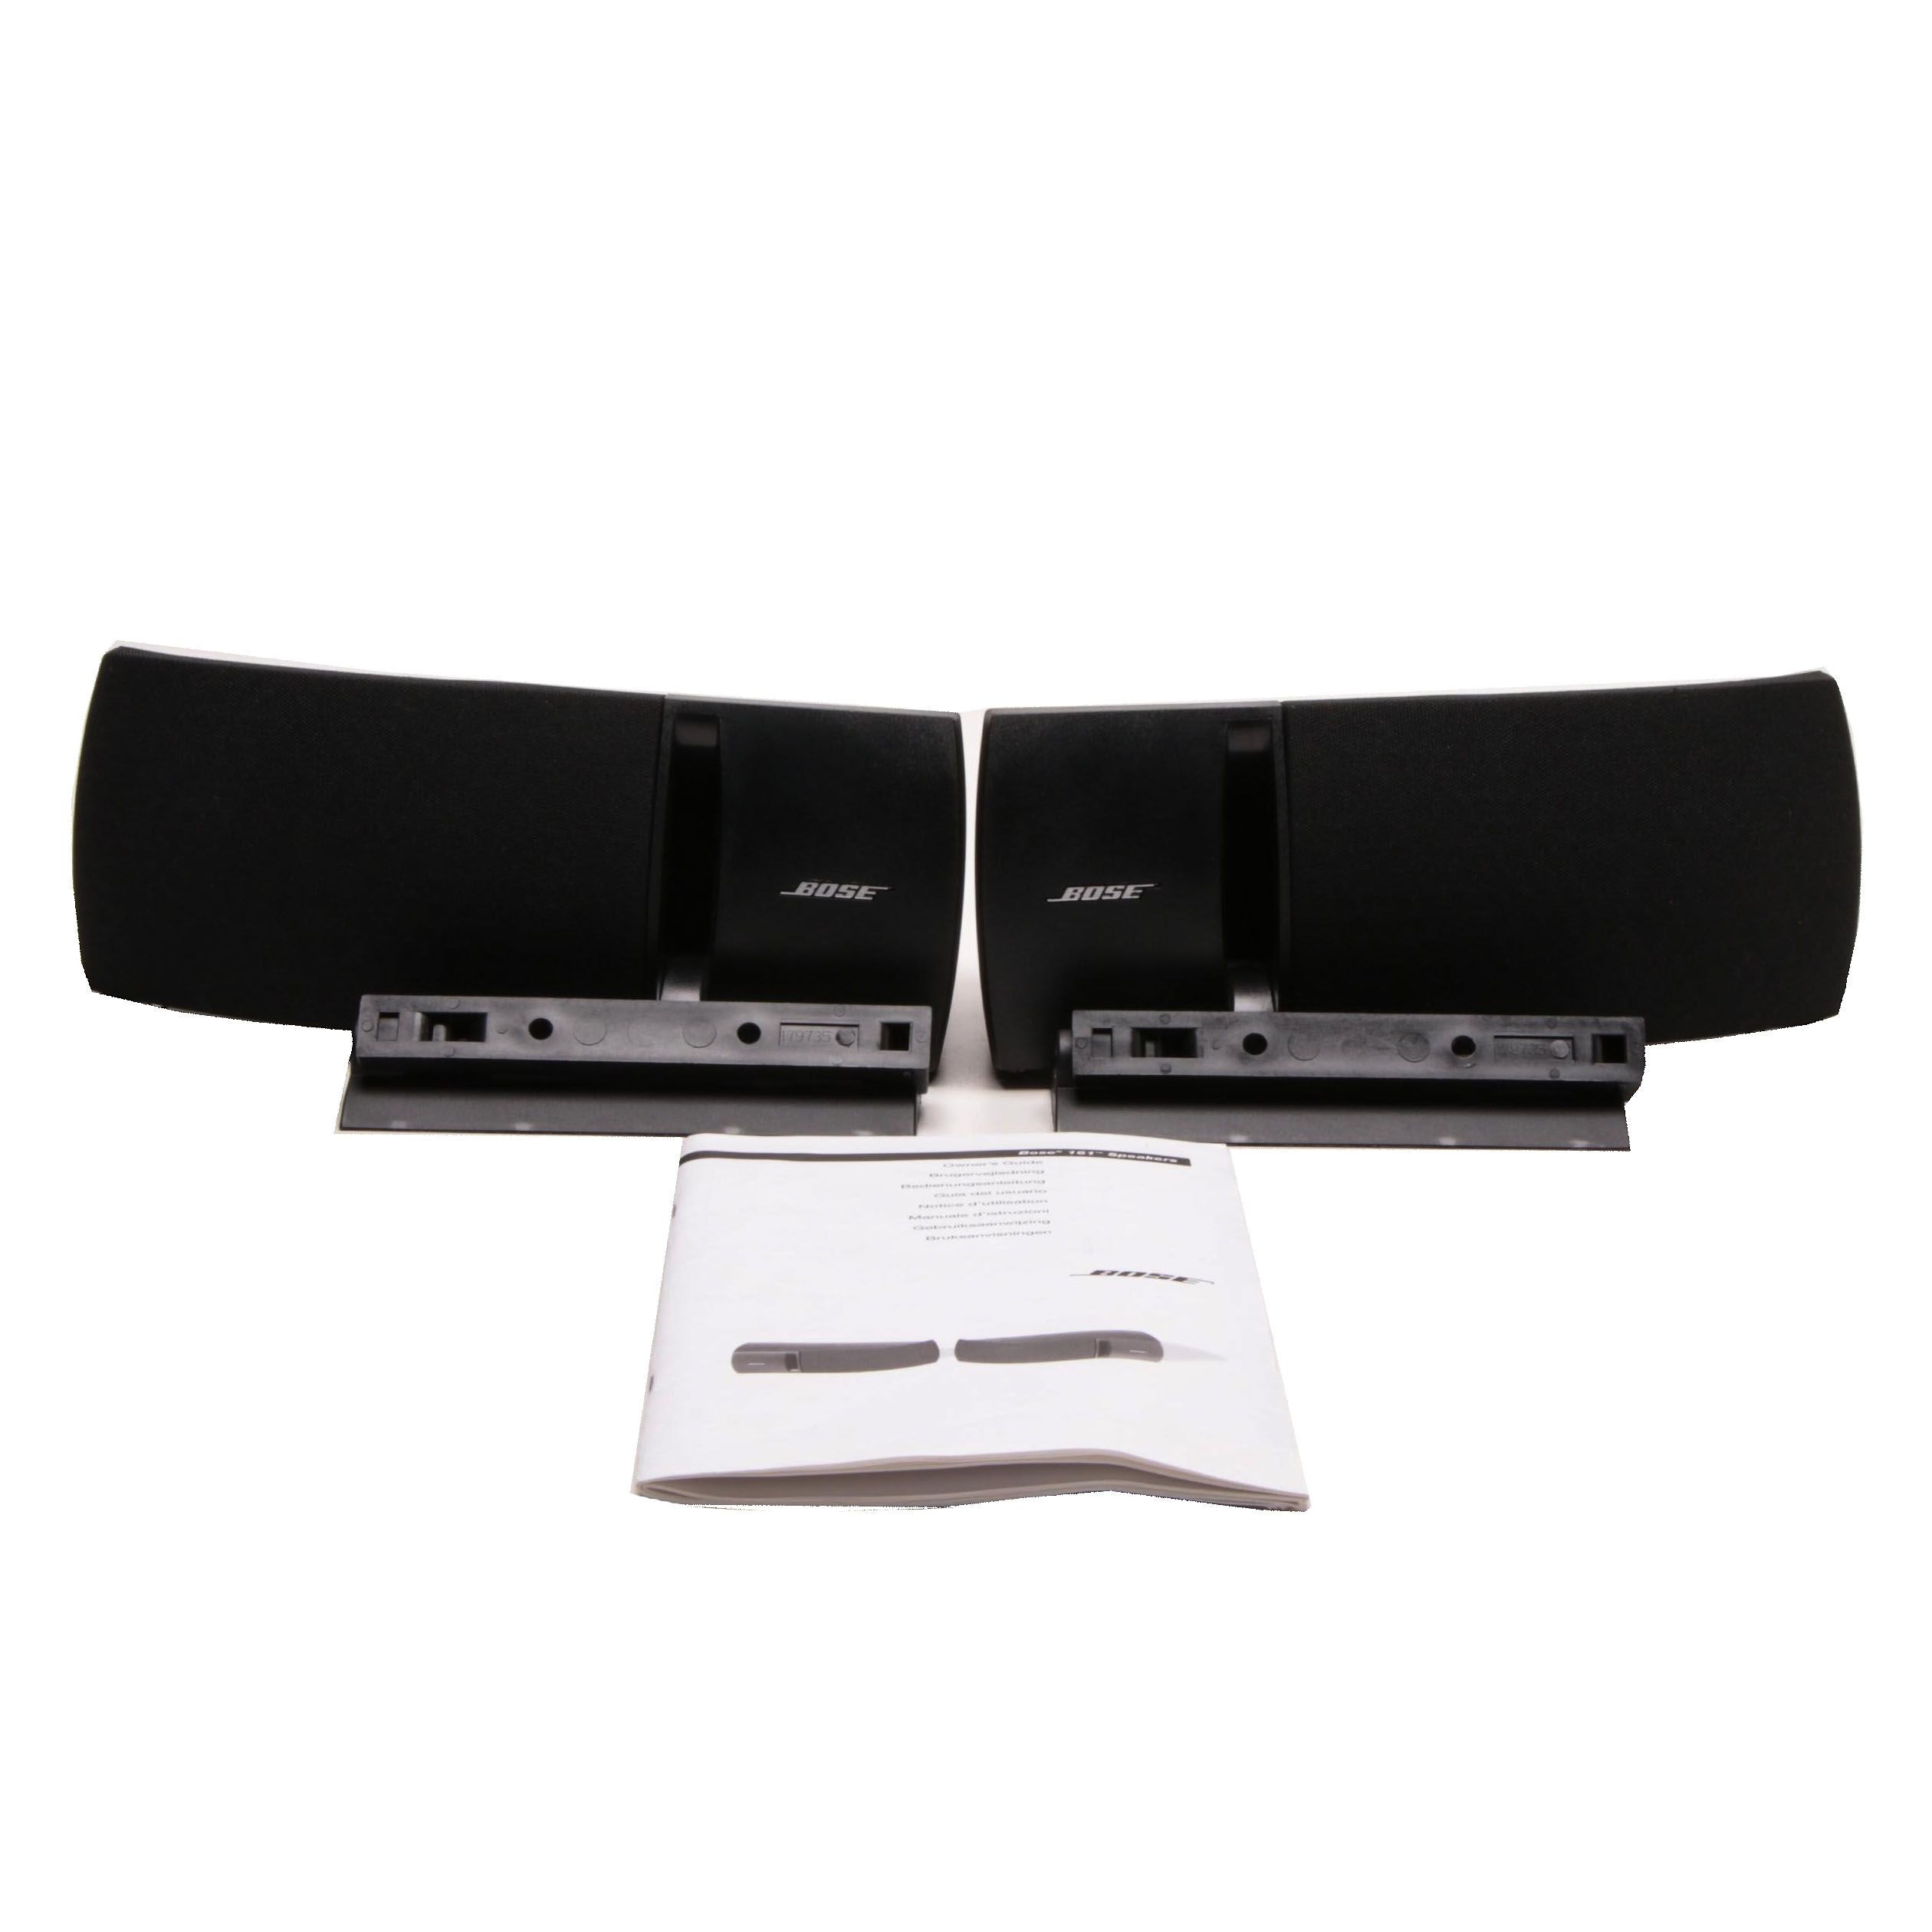 Bose 161 Wall Mount Speakers with Brackets and Owner's Guide